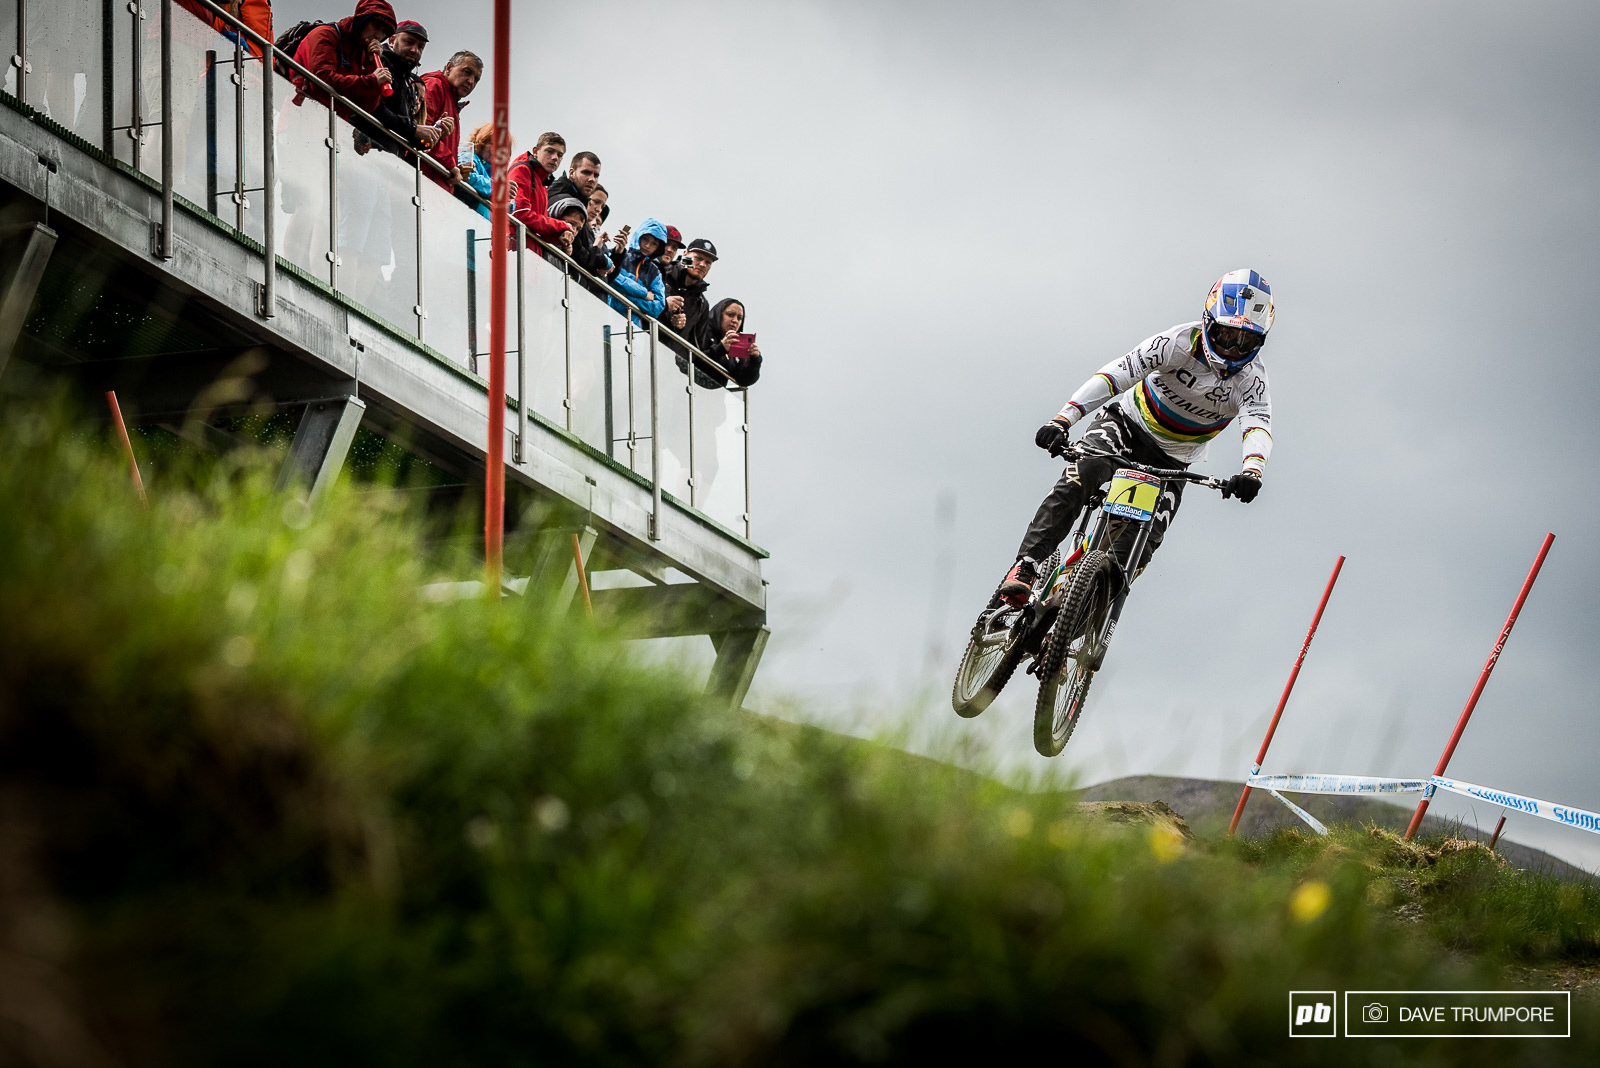 The crowds made it all the way tot he top to cheer as Finn Iles drops into the track on his qualifying run.